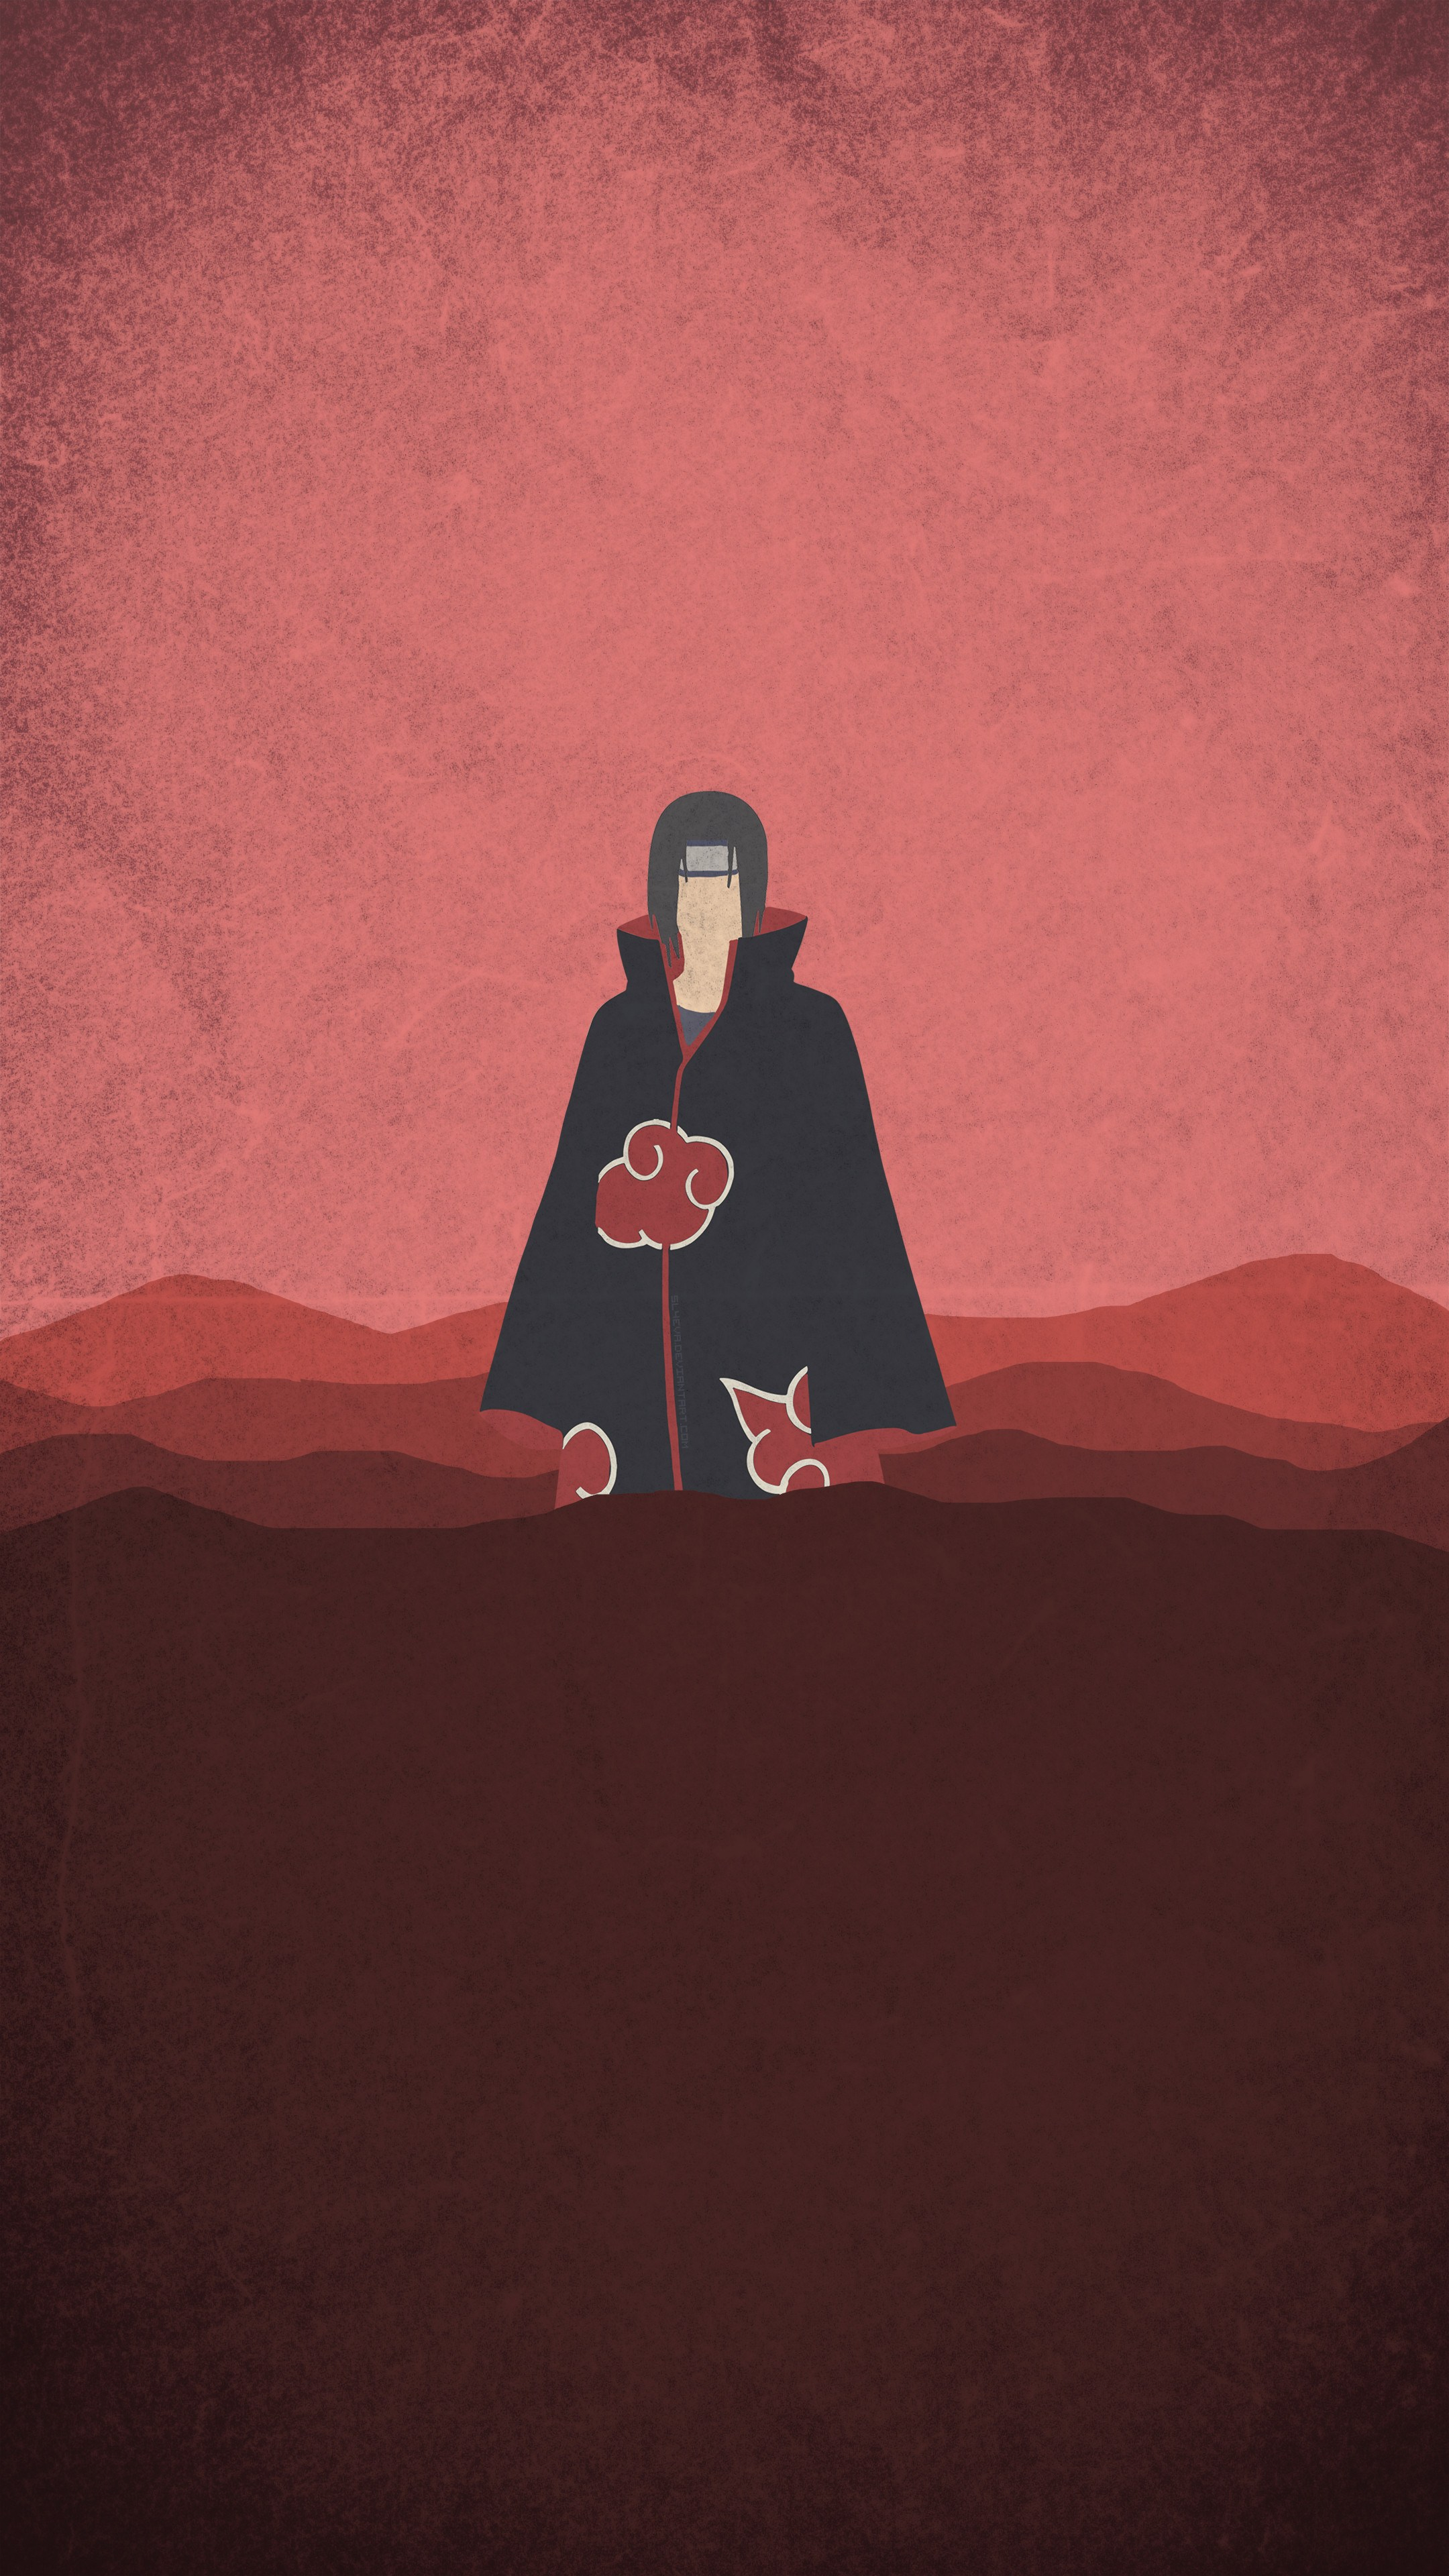 Naruto Phone Wallpaper Posted By Michelle Johnson